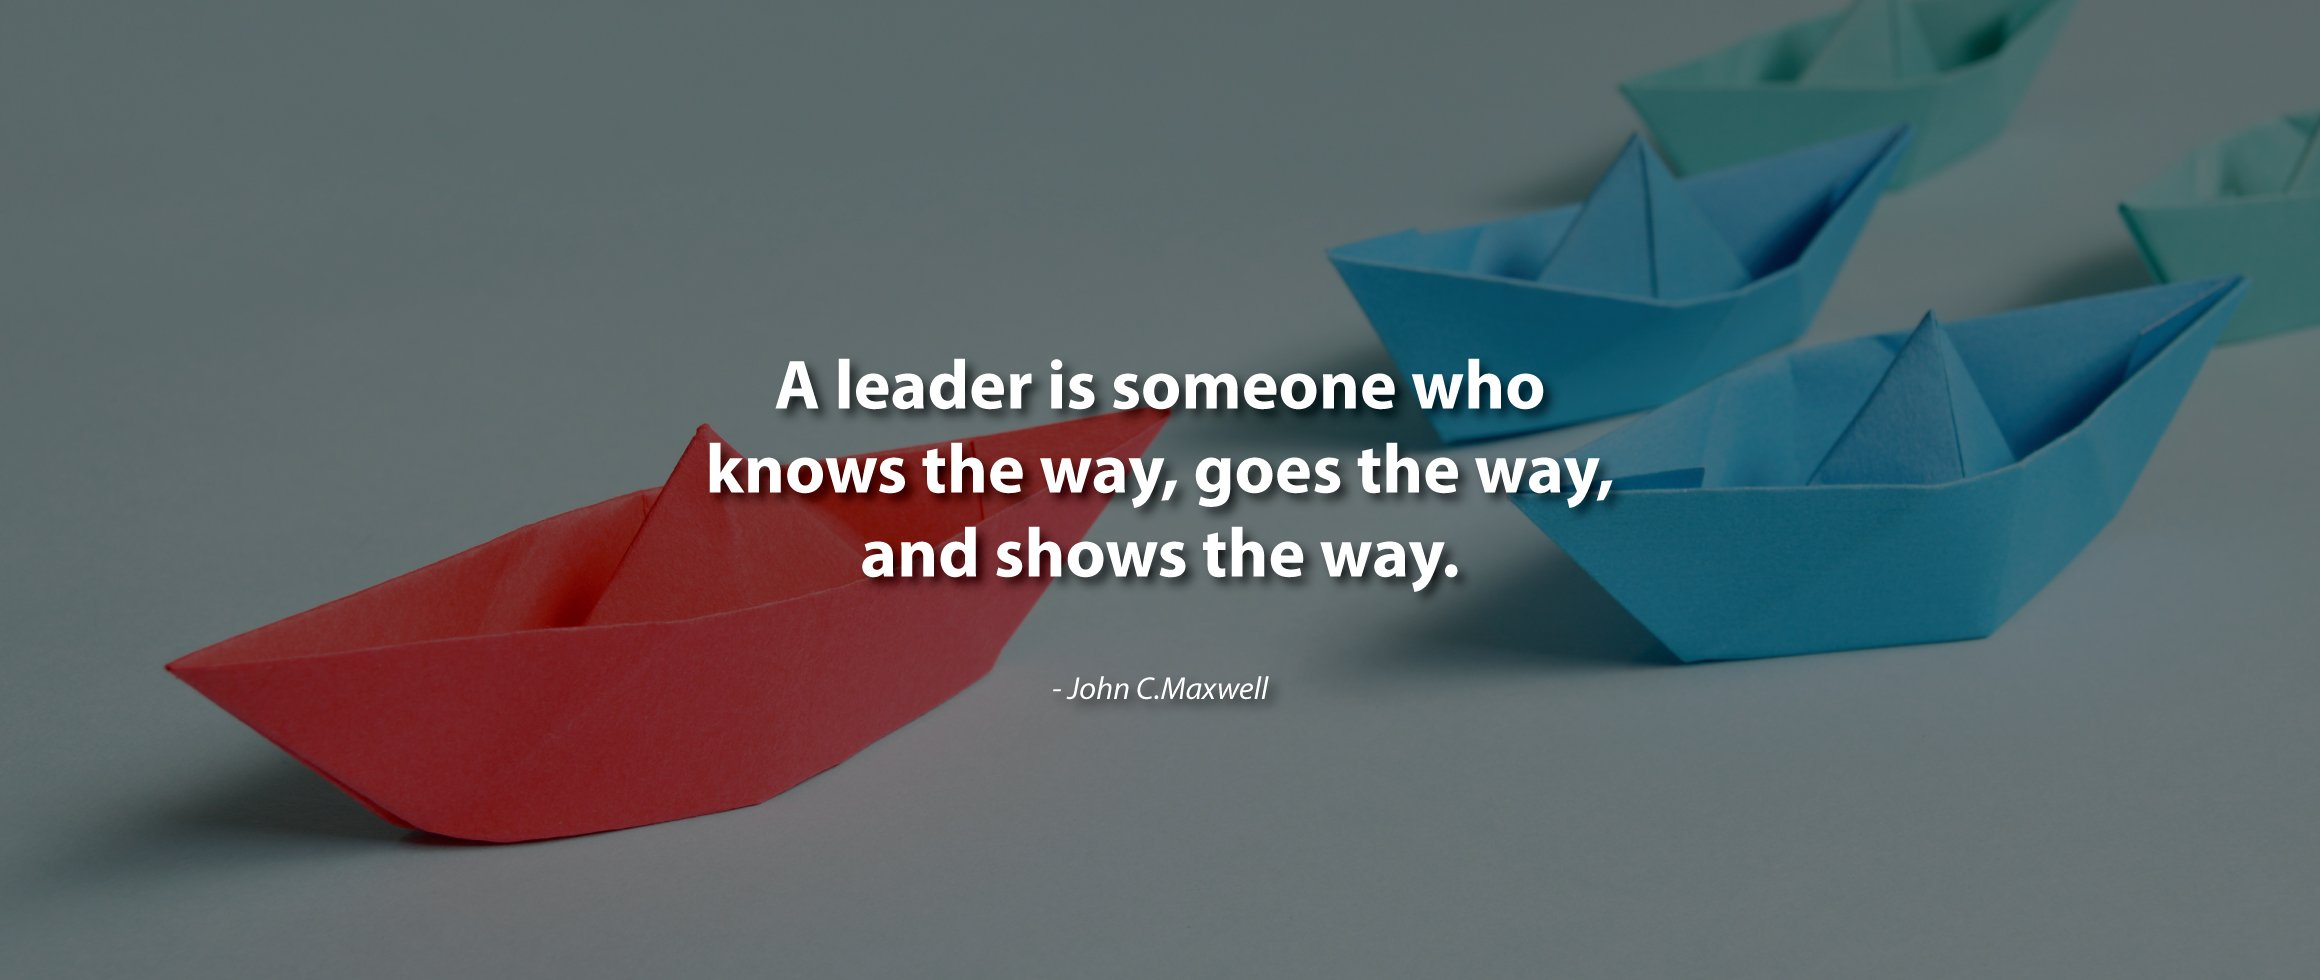 Tips for New Leaders